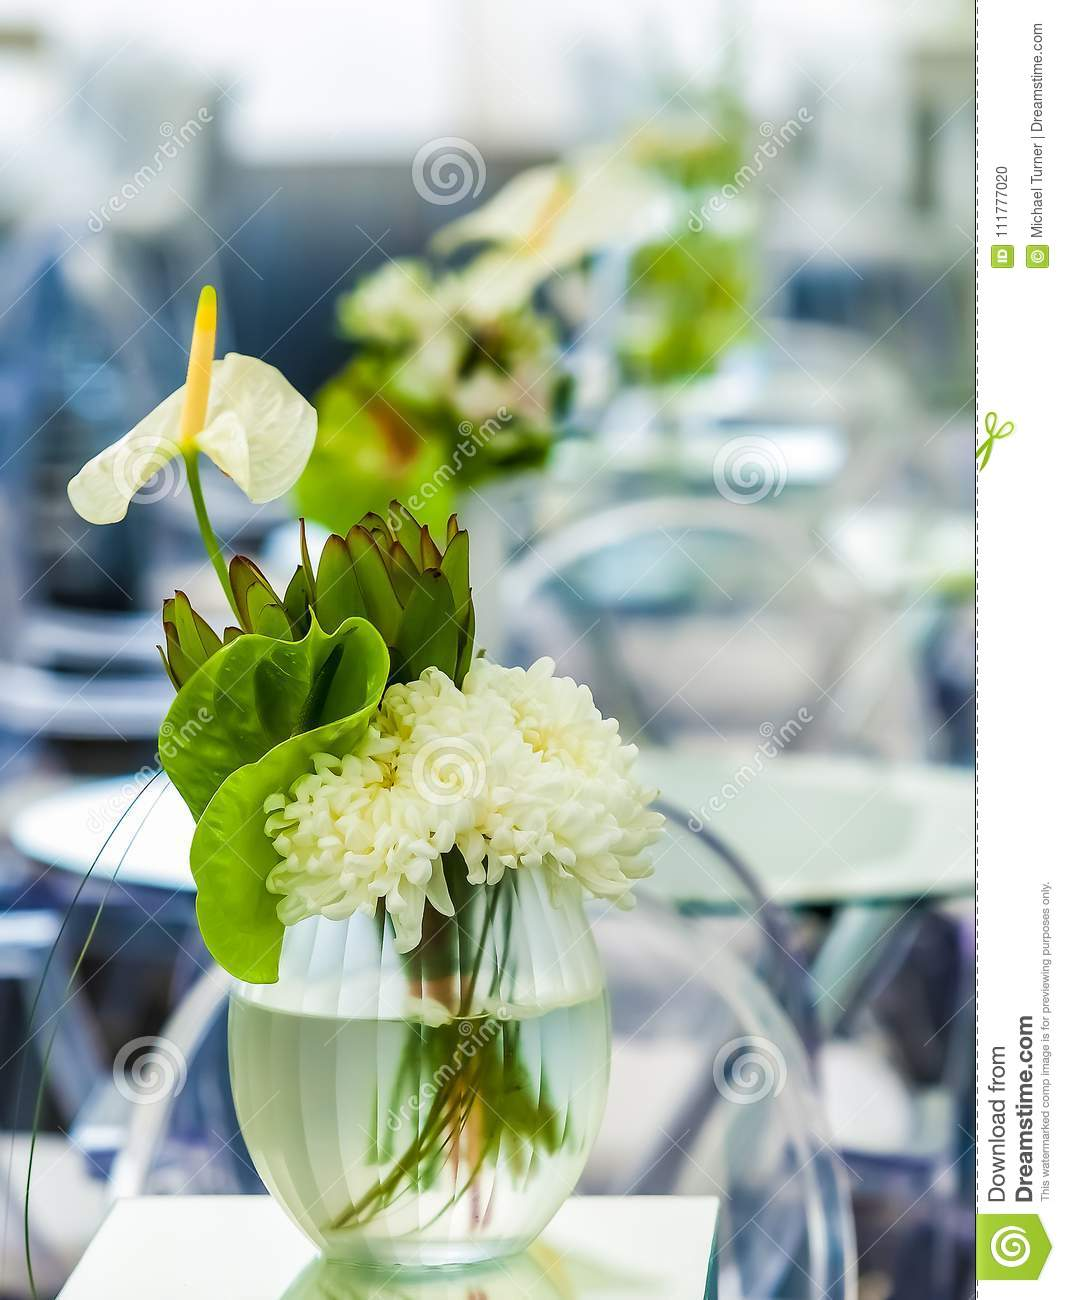 White flowers on a table setting for event or party with lilies